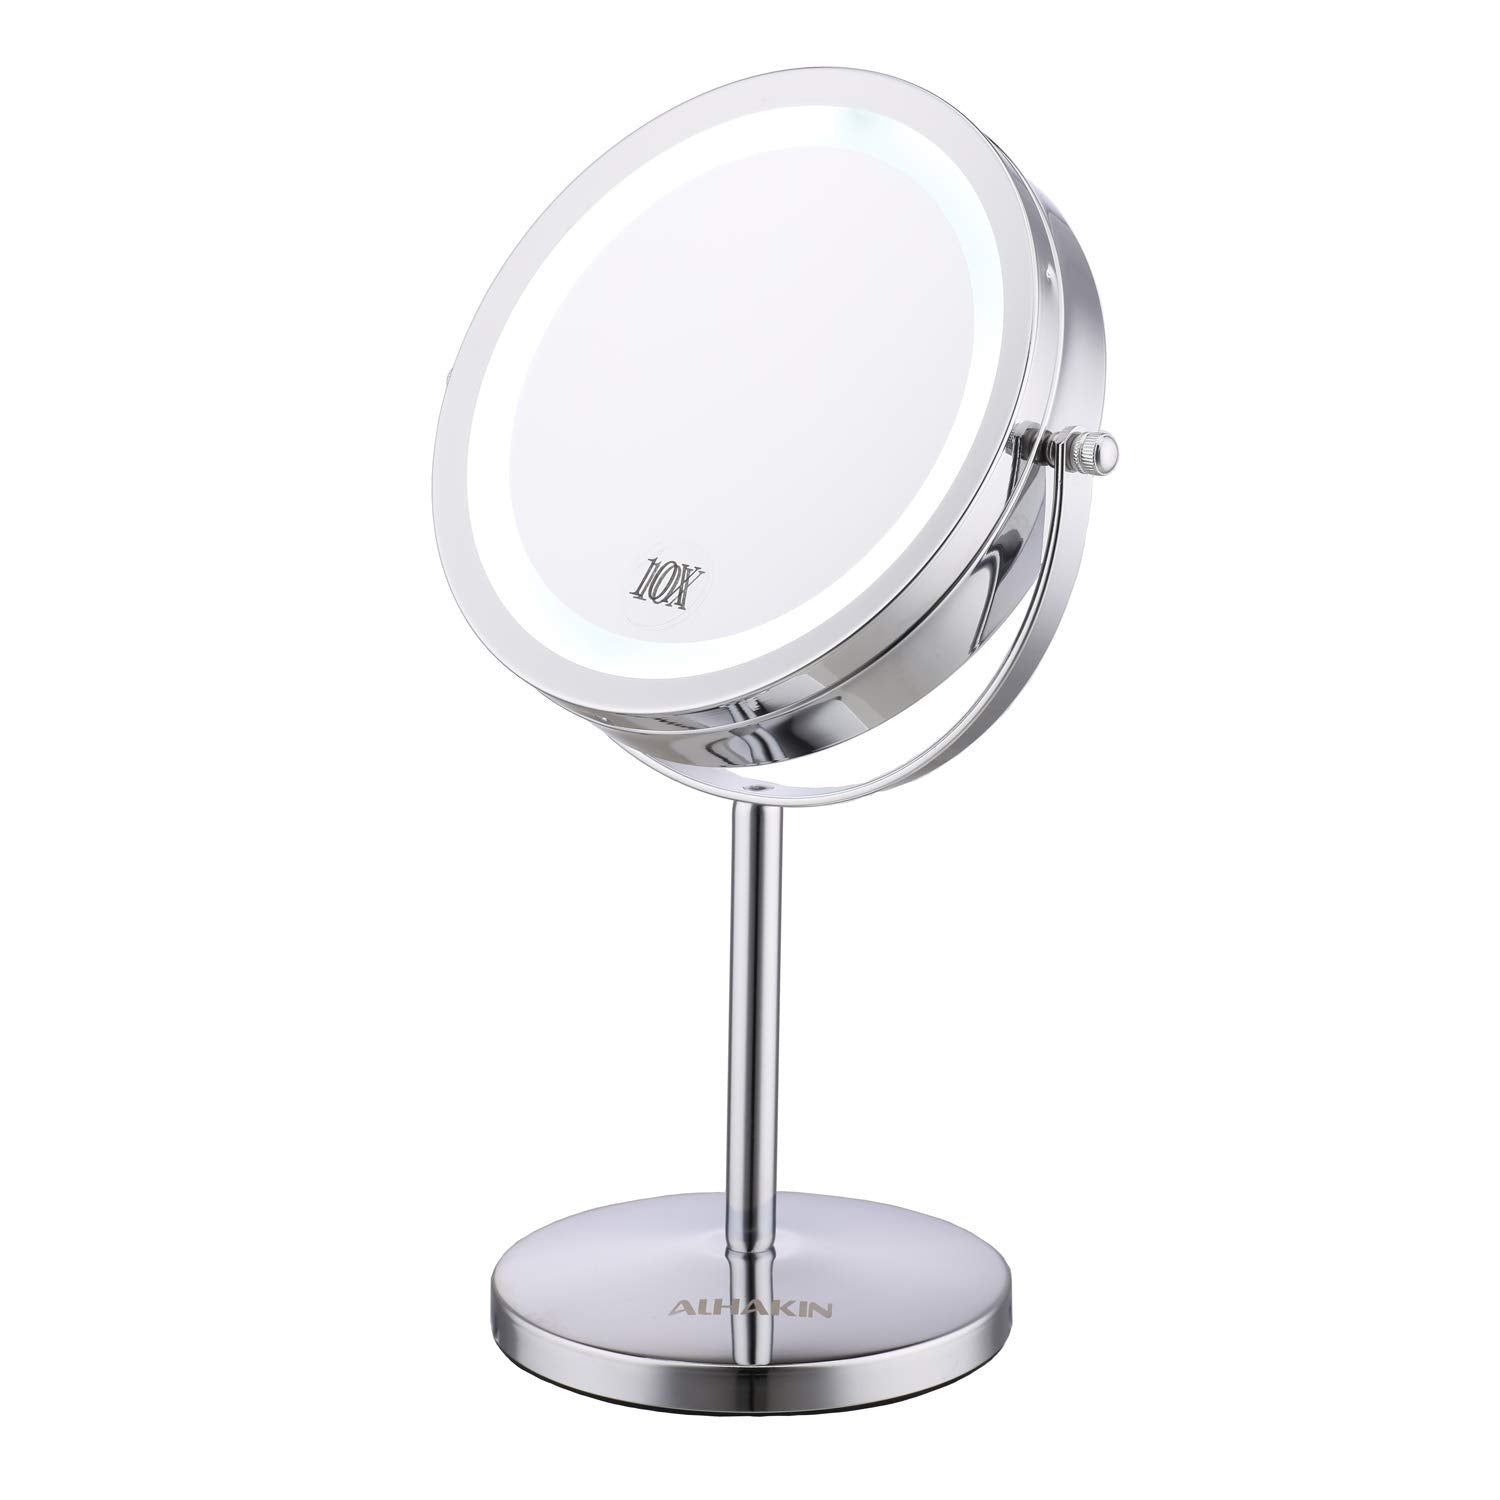 Alhakin Makeup Normal/10X Magnification Table Mirror